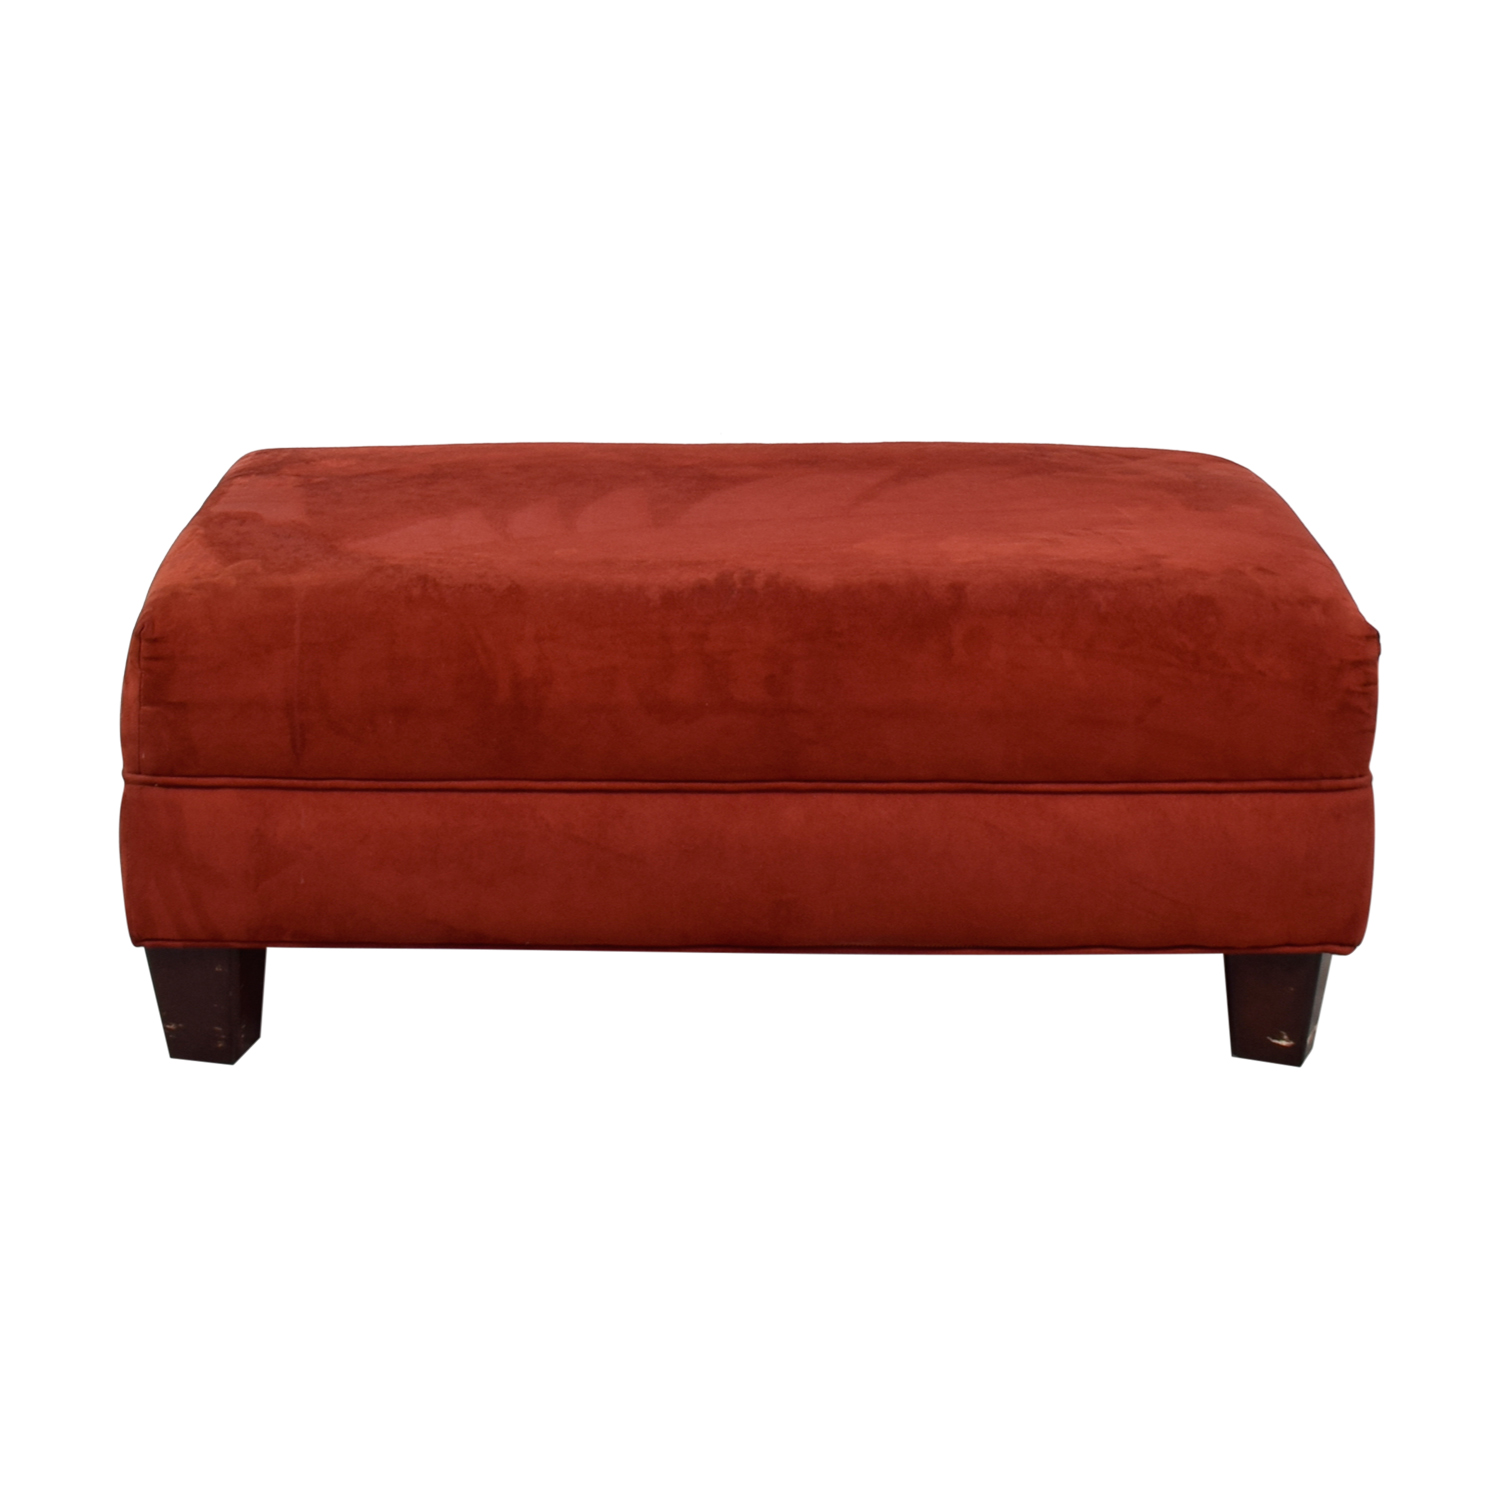 buy Red Ottoman